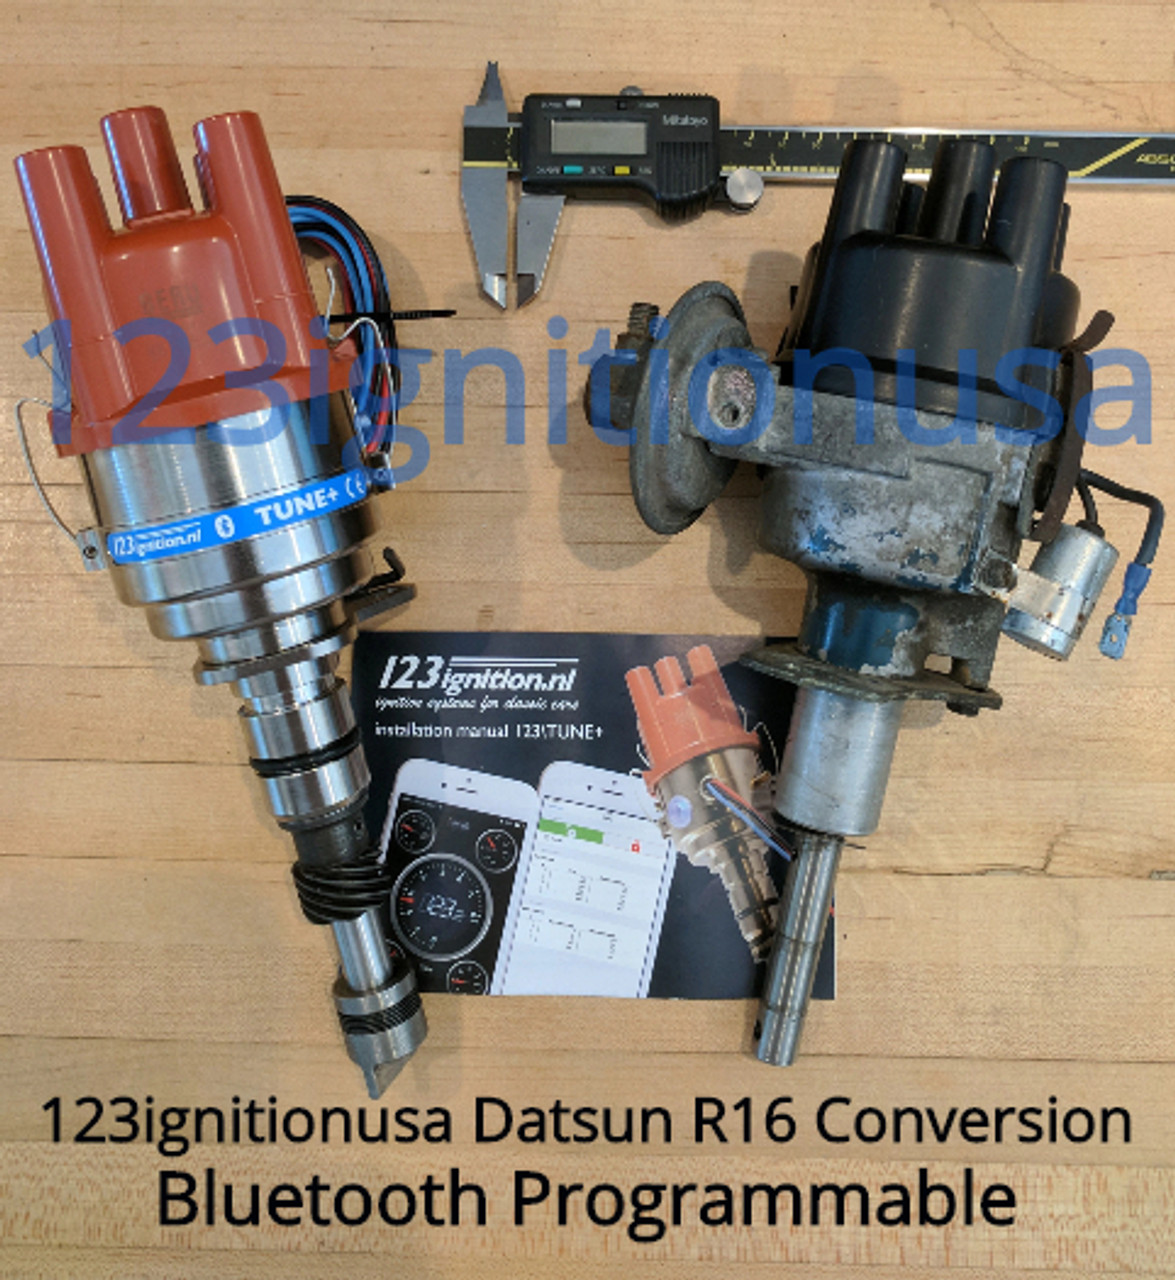 Datsun R16 Roadster Distributor (Bluetooth Programmable) R16 311,411,1600,2000,411SSS,U20,H20  L4 engine (Built to Order)($50 Refundable Core Charge) - No Refunds or cancellations